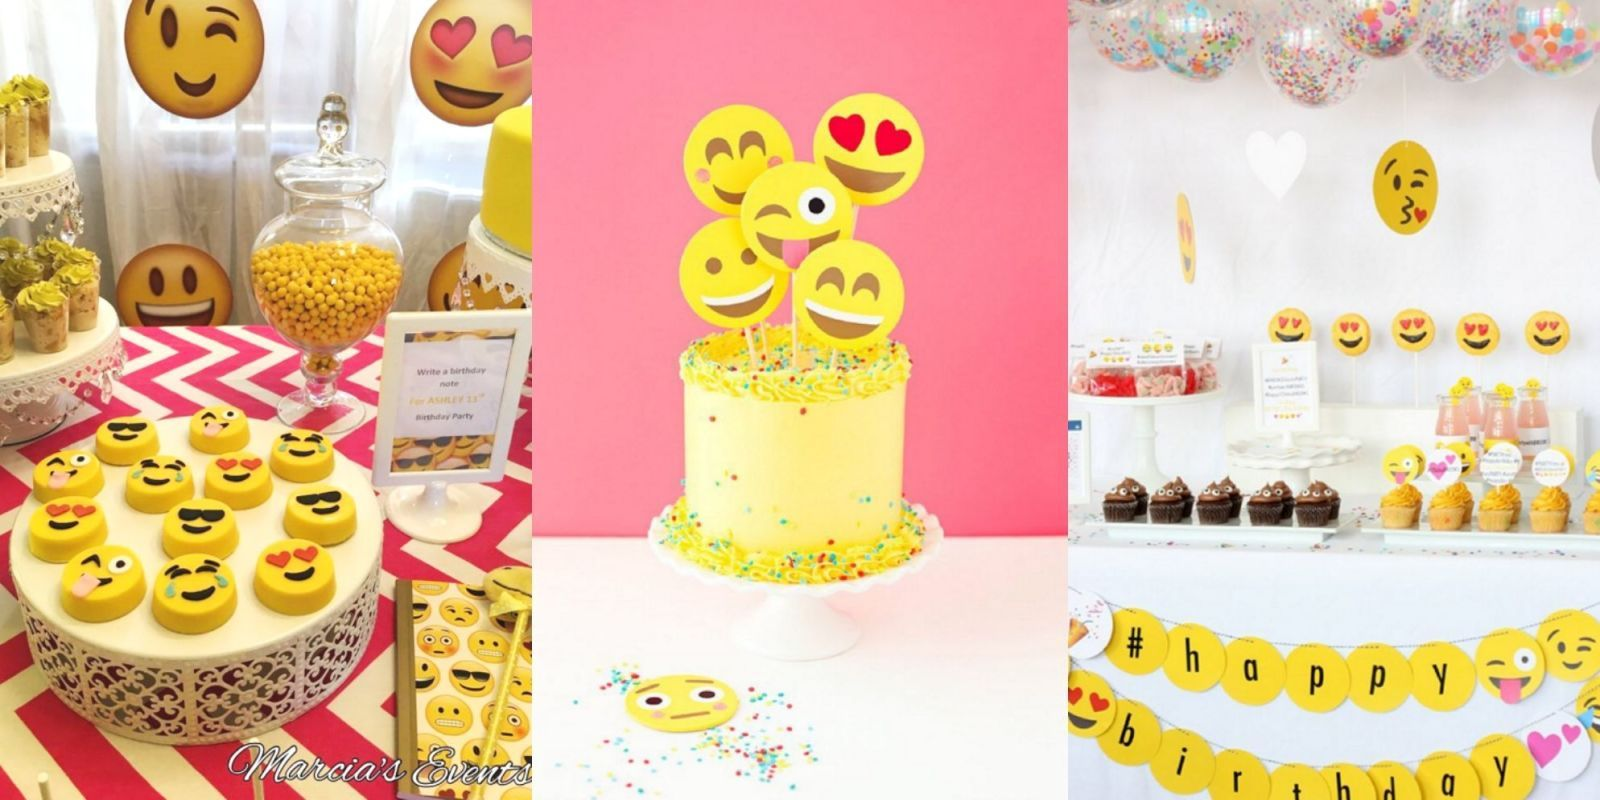 Emoji Themed Kids Birthday Parties Are A Thing And They Jpg 480x240 Cake